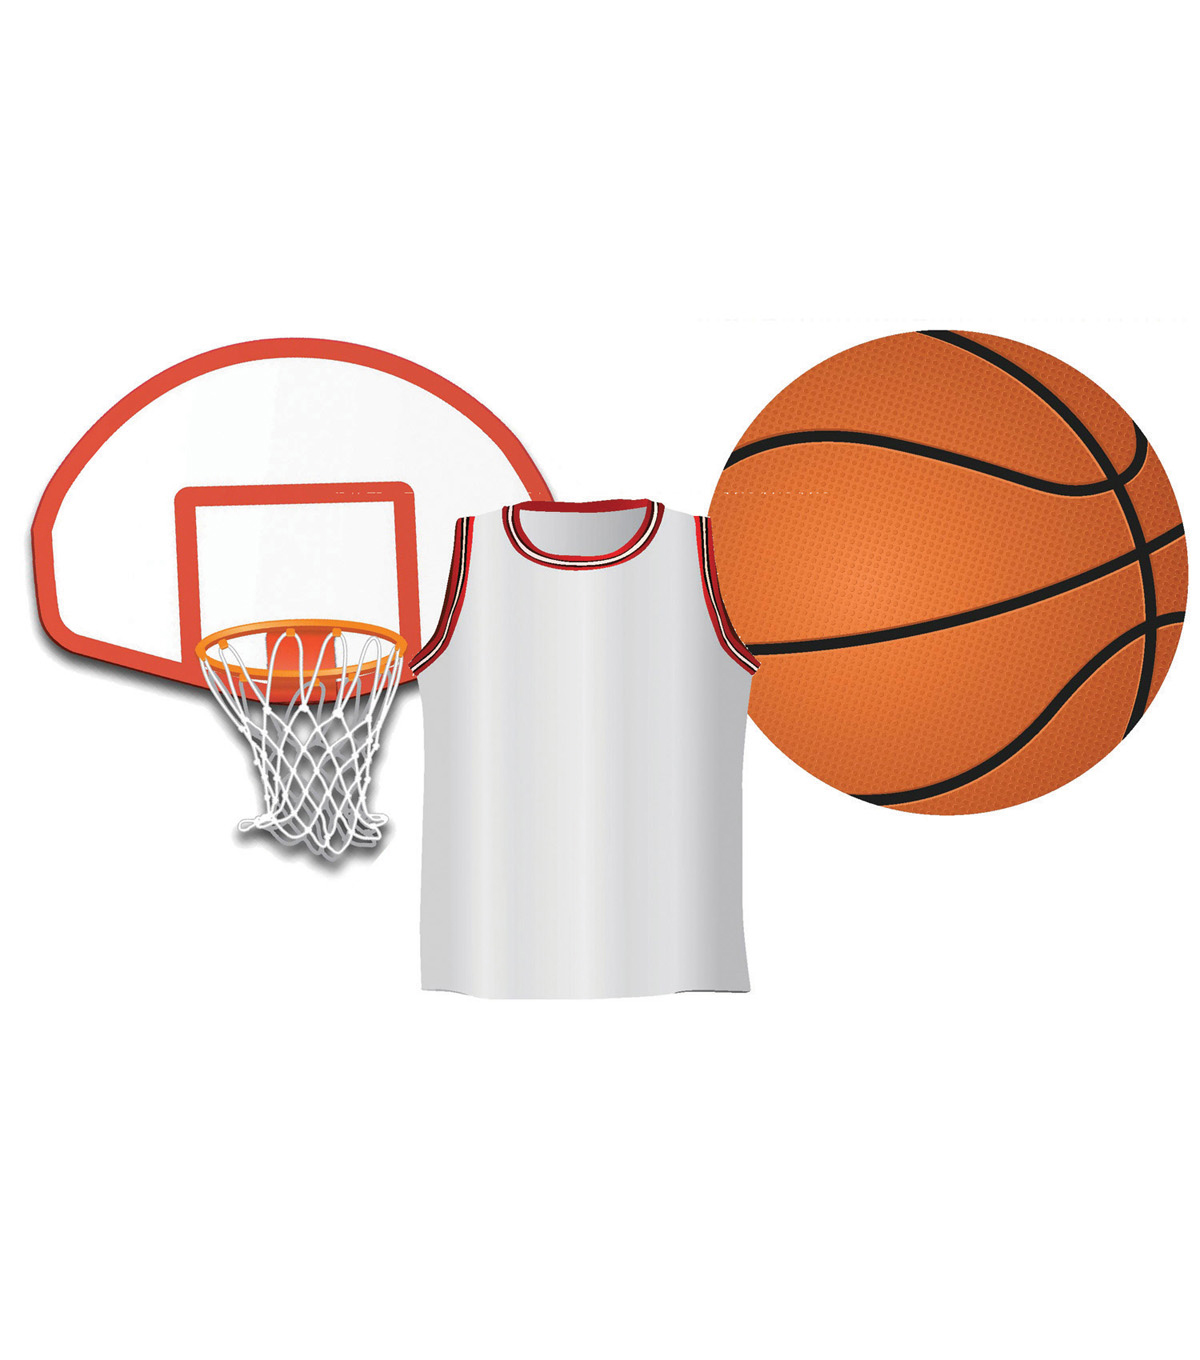 Basketball Assorted Cut Outs 36 pieces/pk, Set of 6 packs